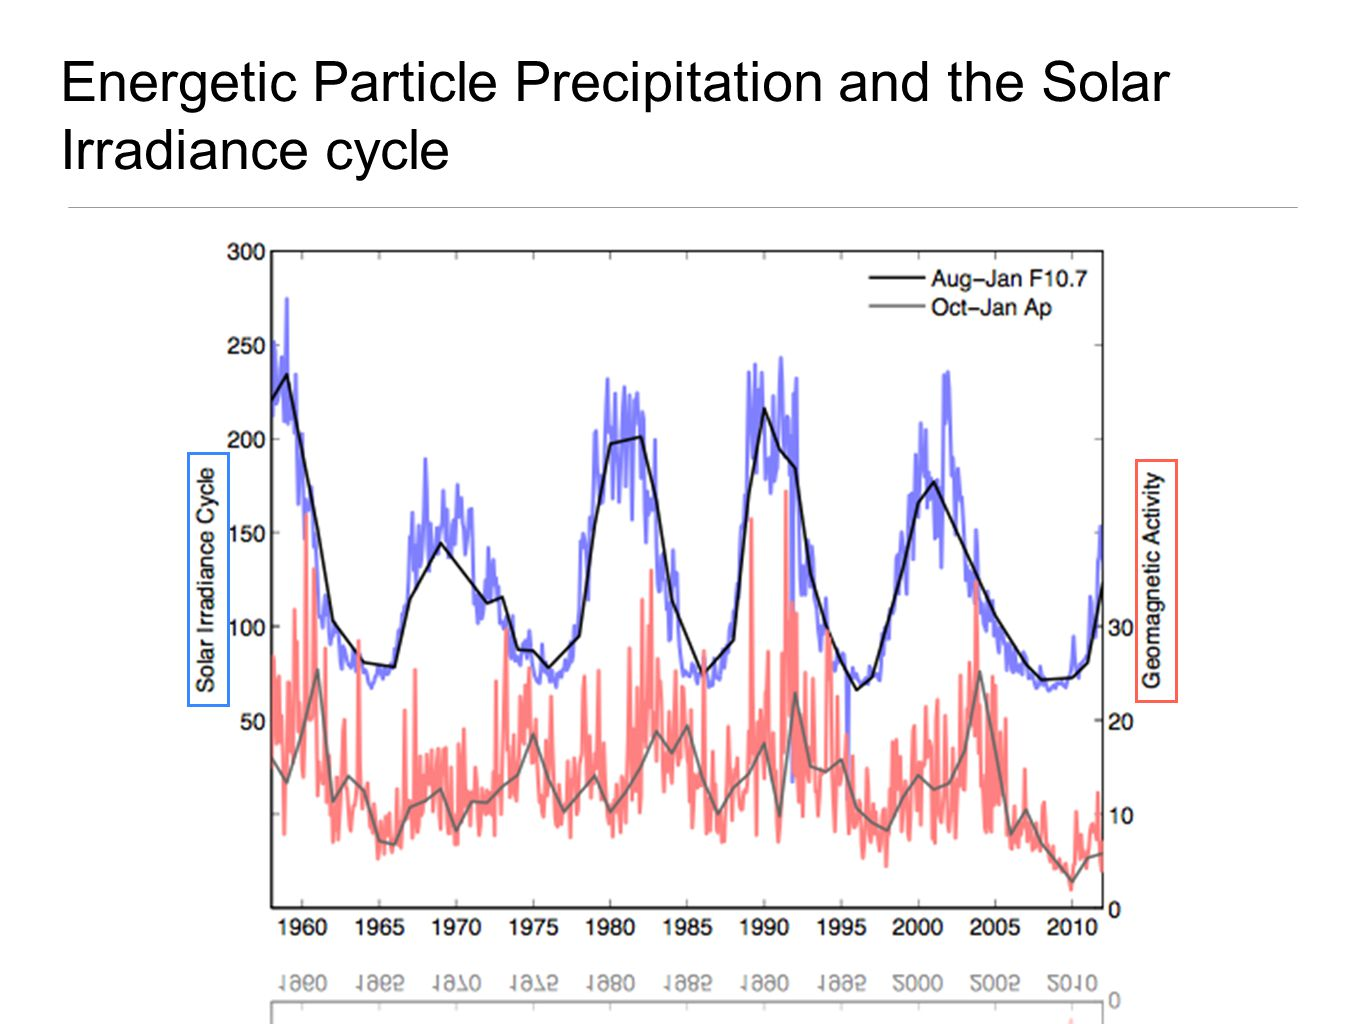 Energetic Particle Precipitation and the Solar Irradiance cycle